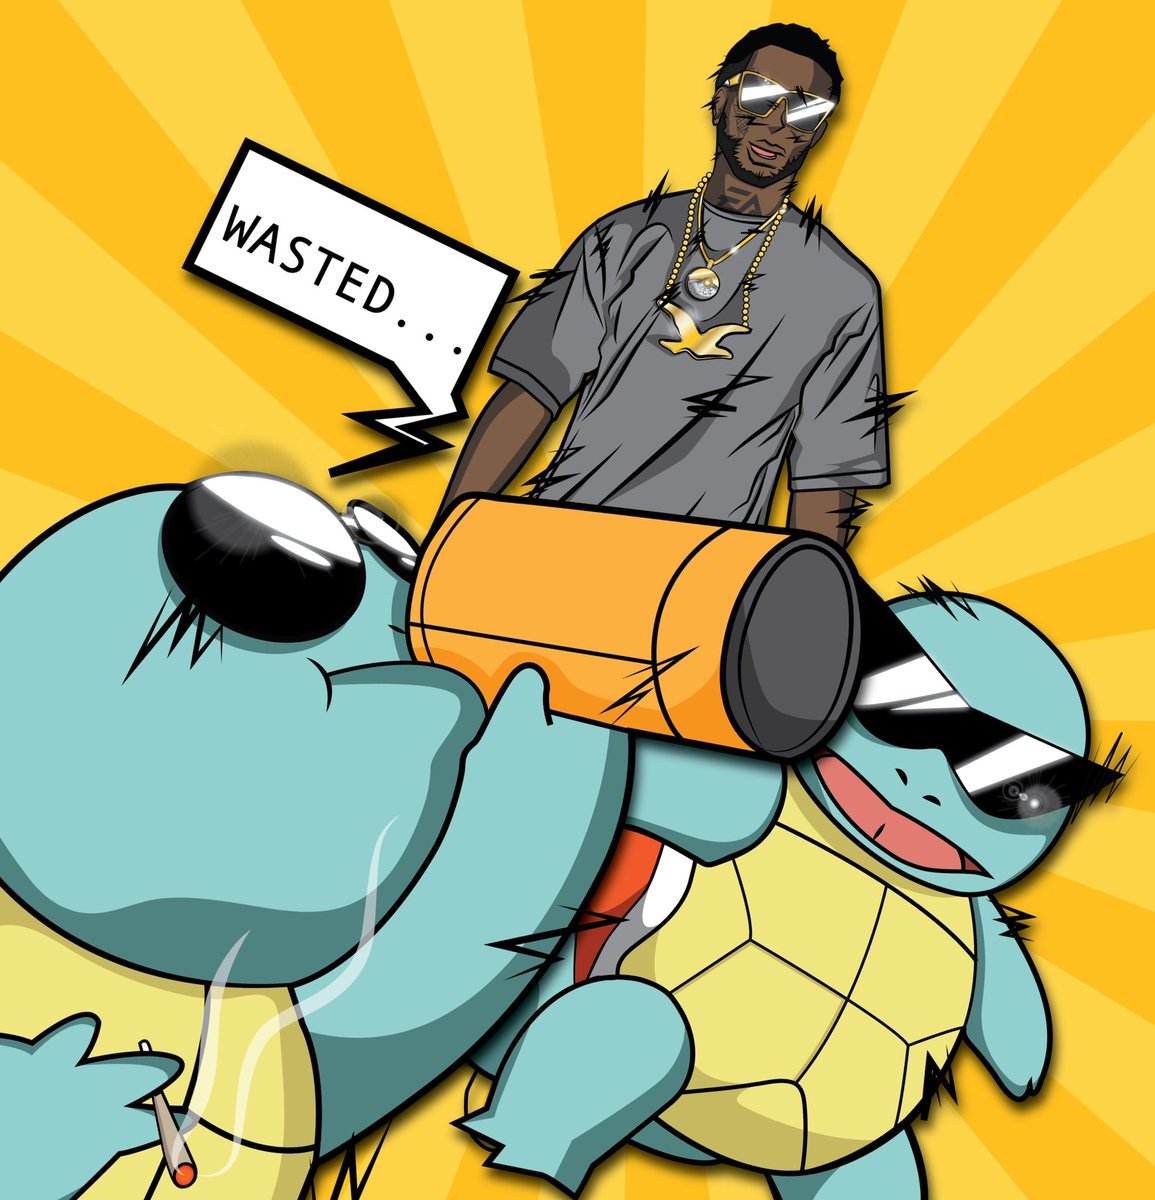 Gucci x Squirtle Squad #BRODIE https://t.co/5OnXwbteBK